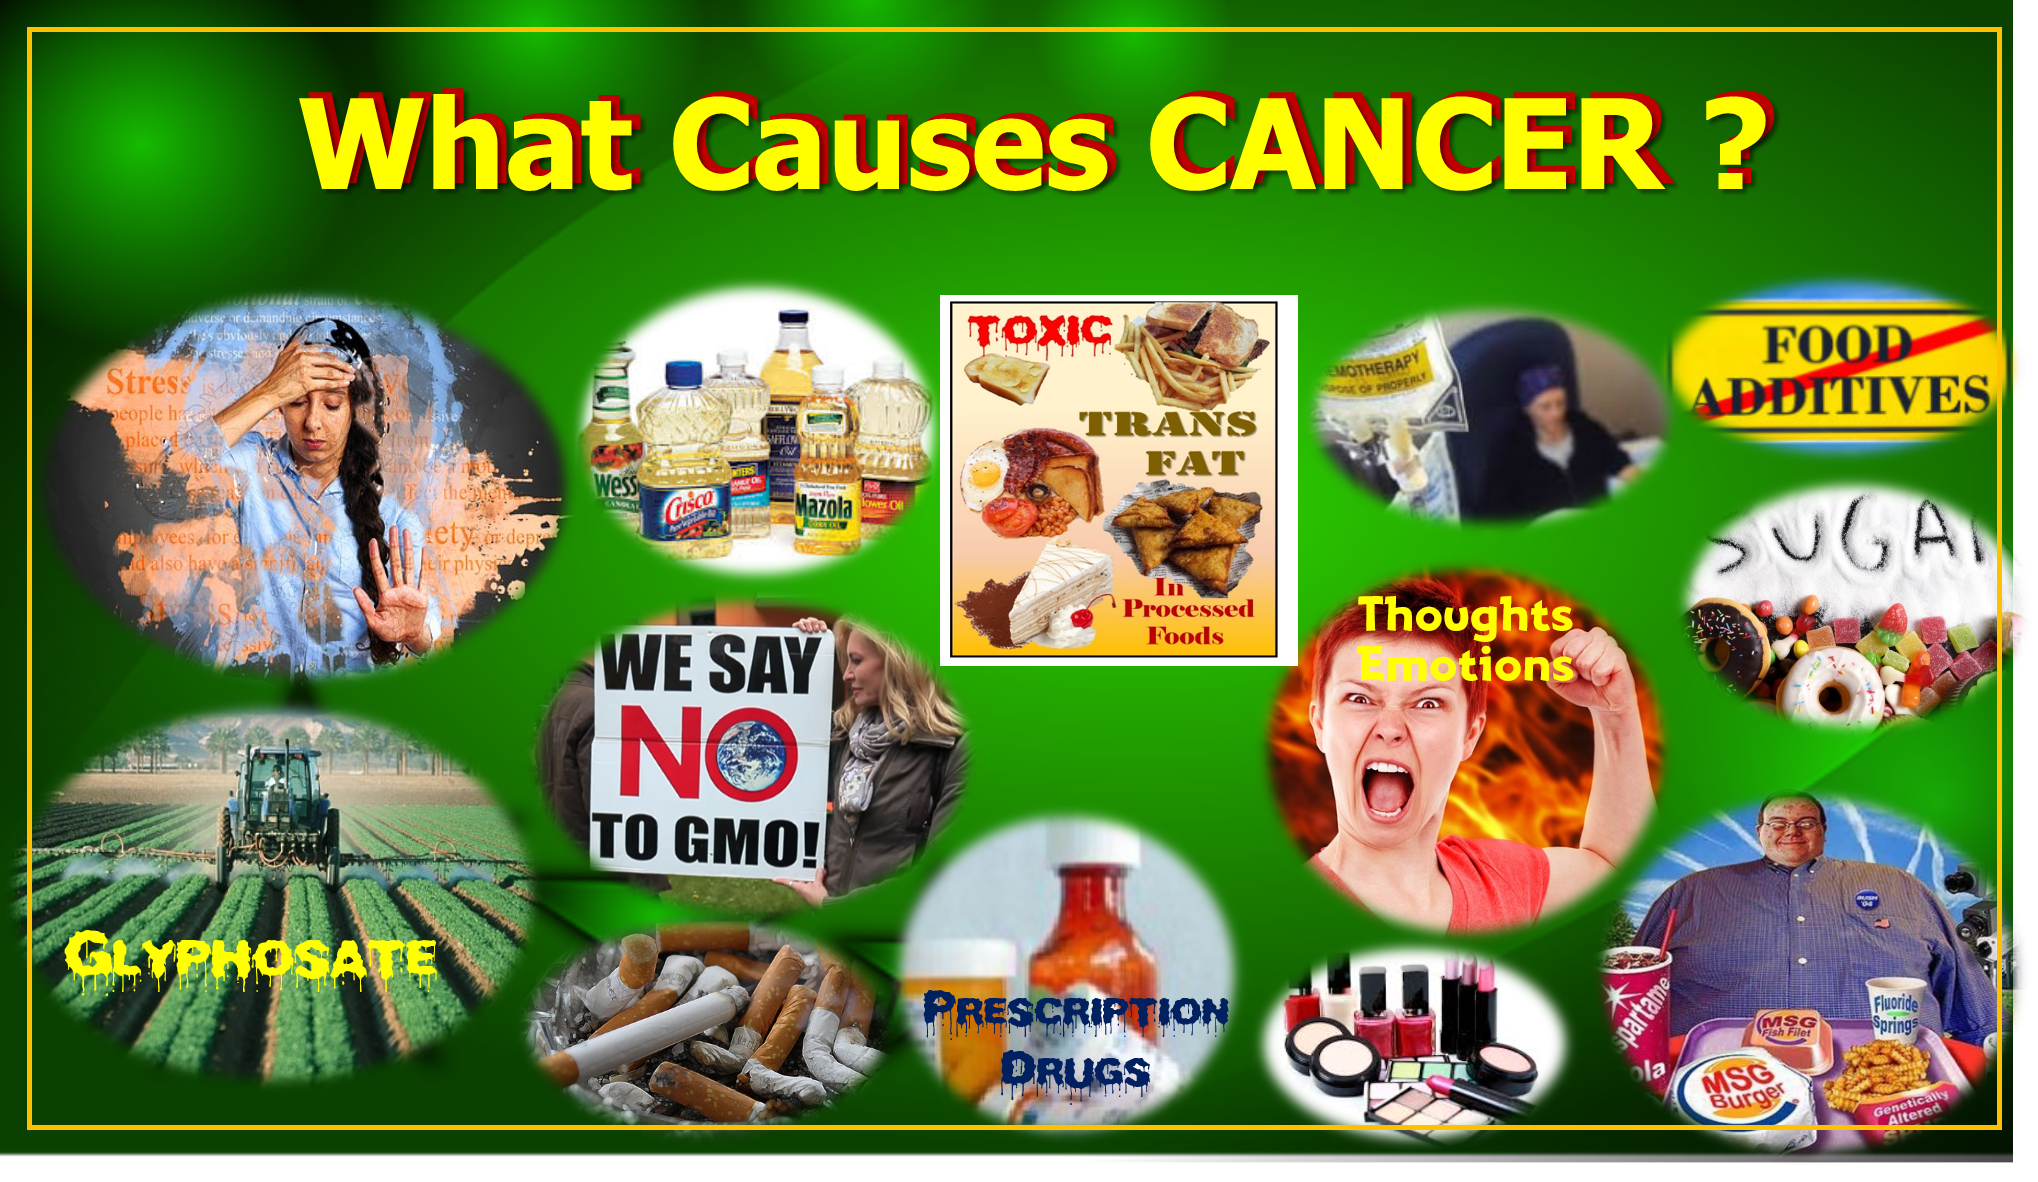 What-CauseCancer2